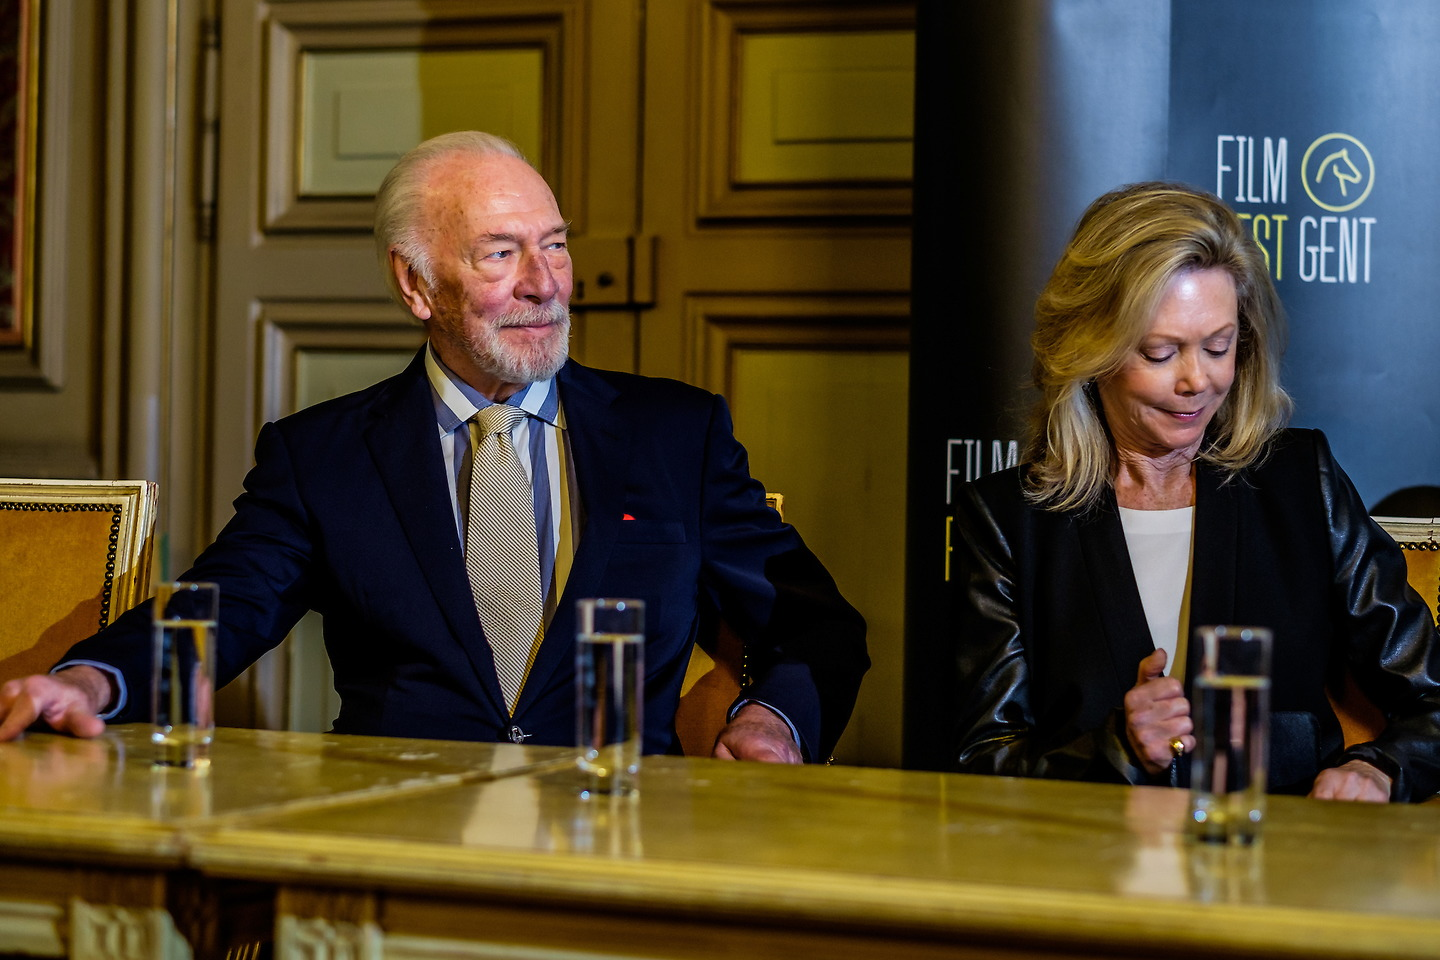 Film Fest Gent - Christopher Plummer: Joseph Plateau Honorary Award (14-10-2015)